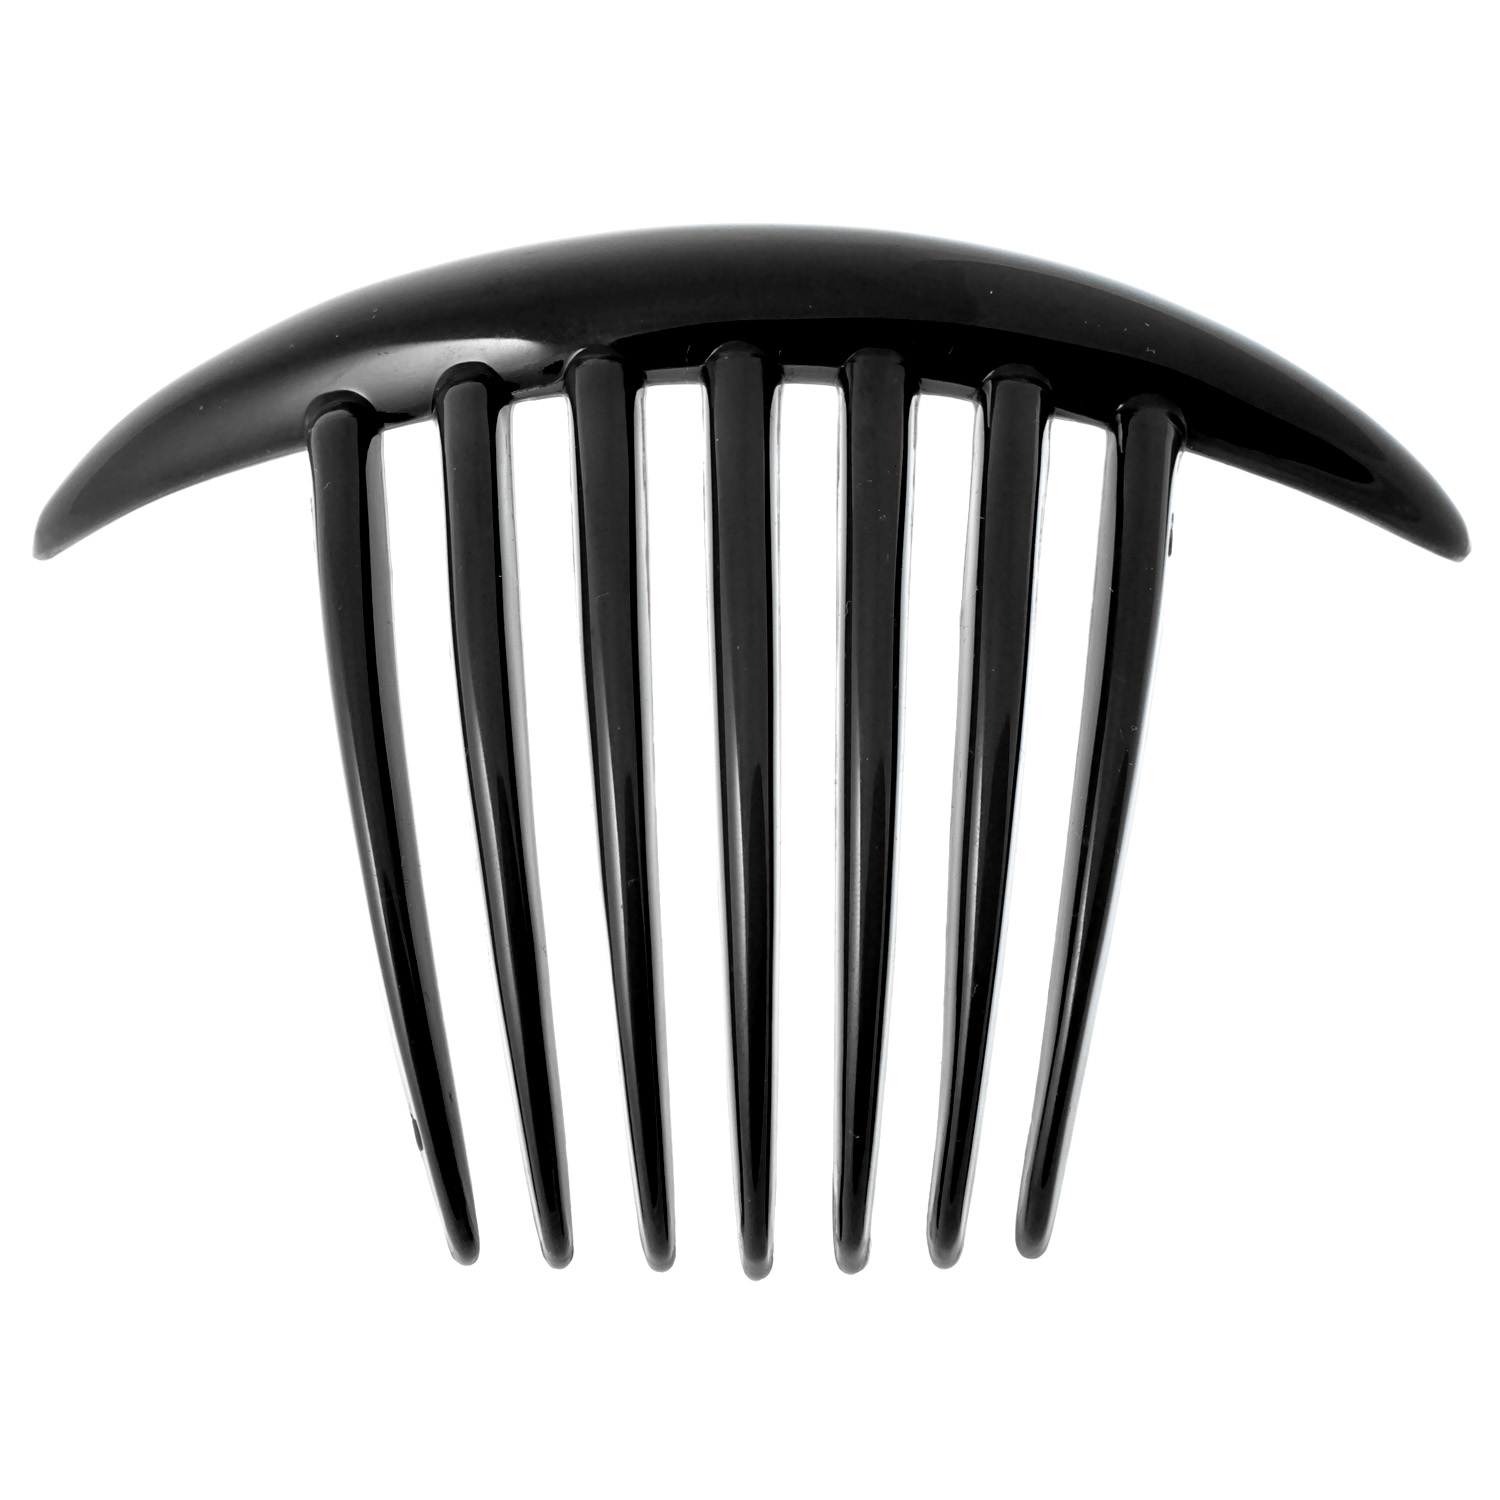 Janne Black French Comb